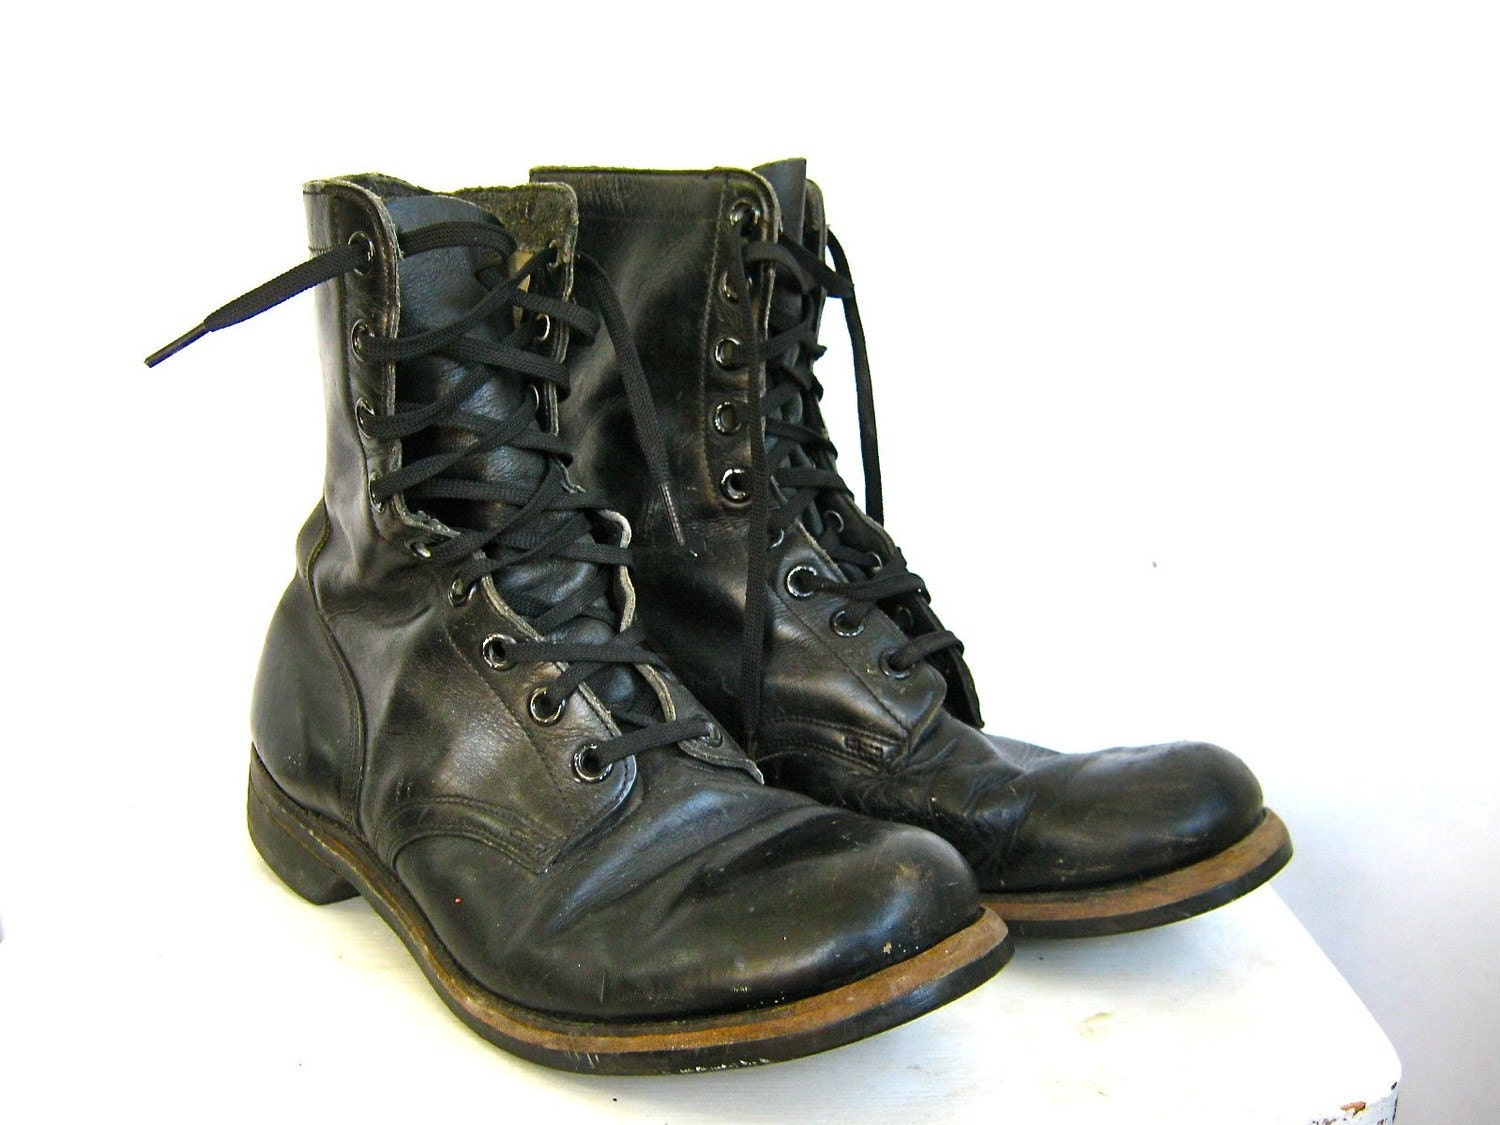 Vintage Black Leather Military Combat Boots W Biltrite Sole